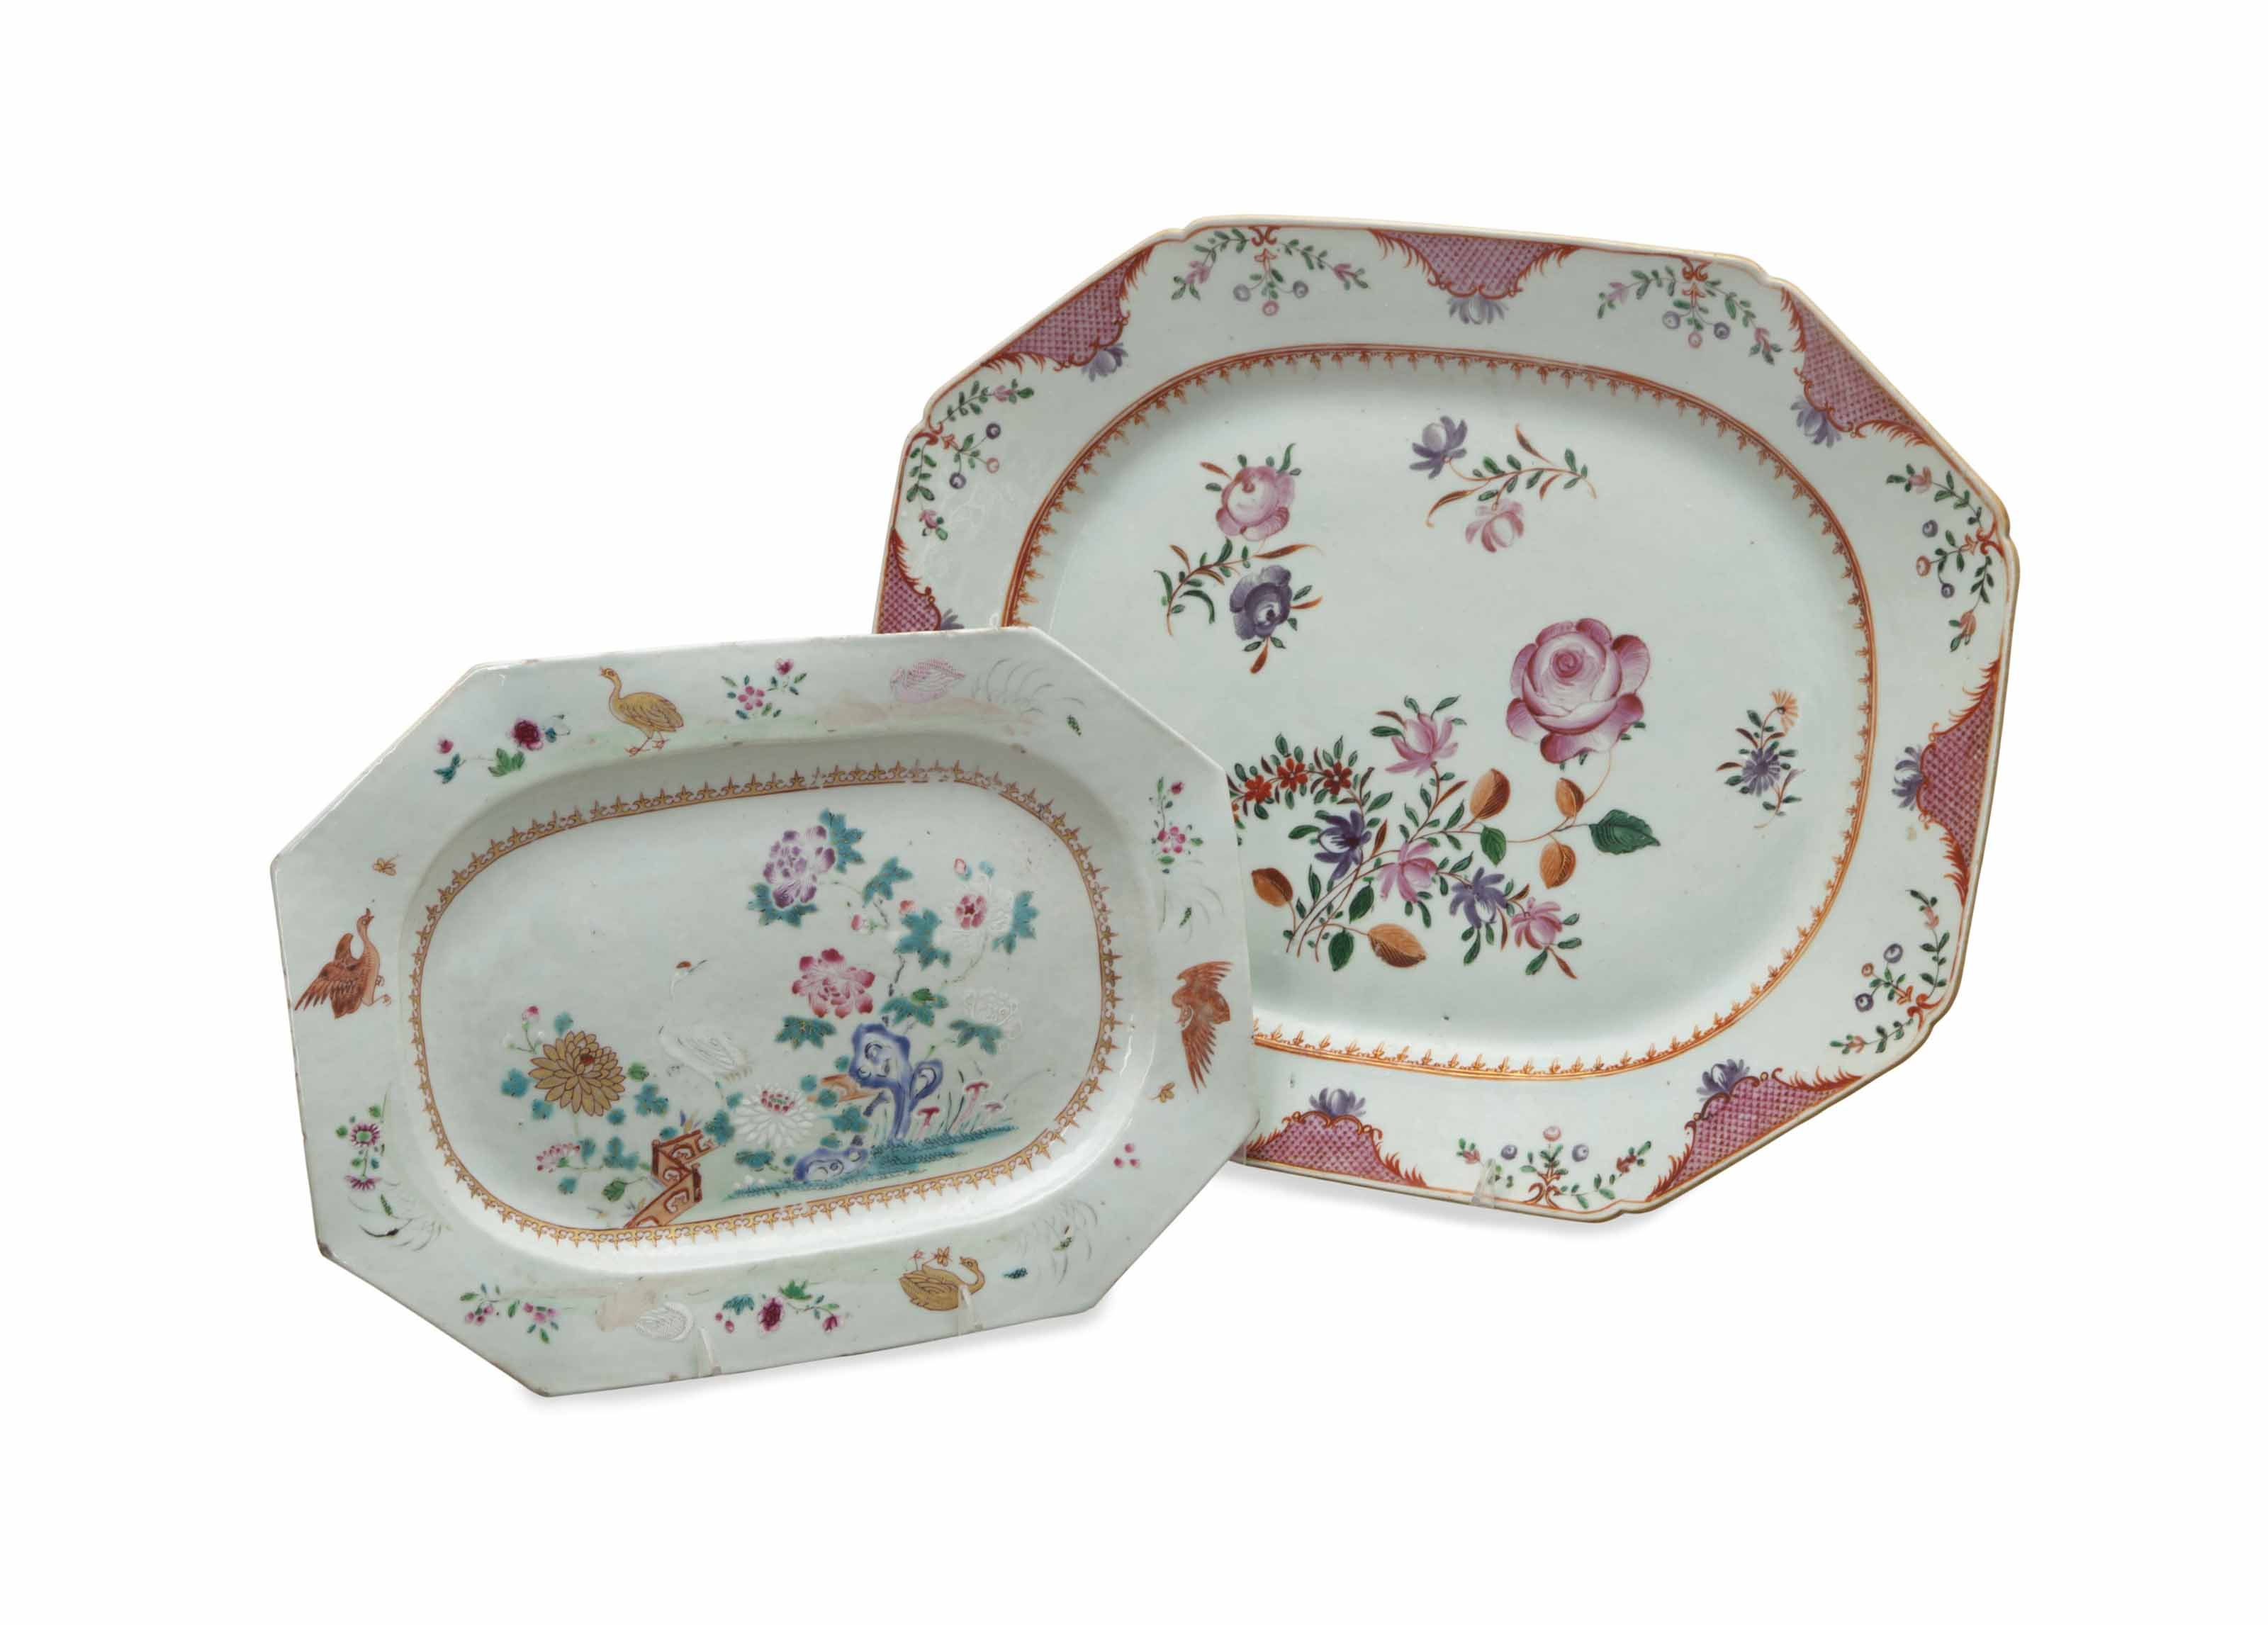 TWO CHINESE EXPORT FAMILLE ROSE OCTAGONAL PLATTERS,